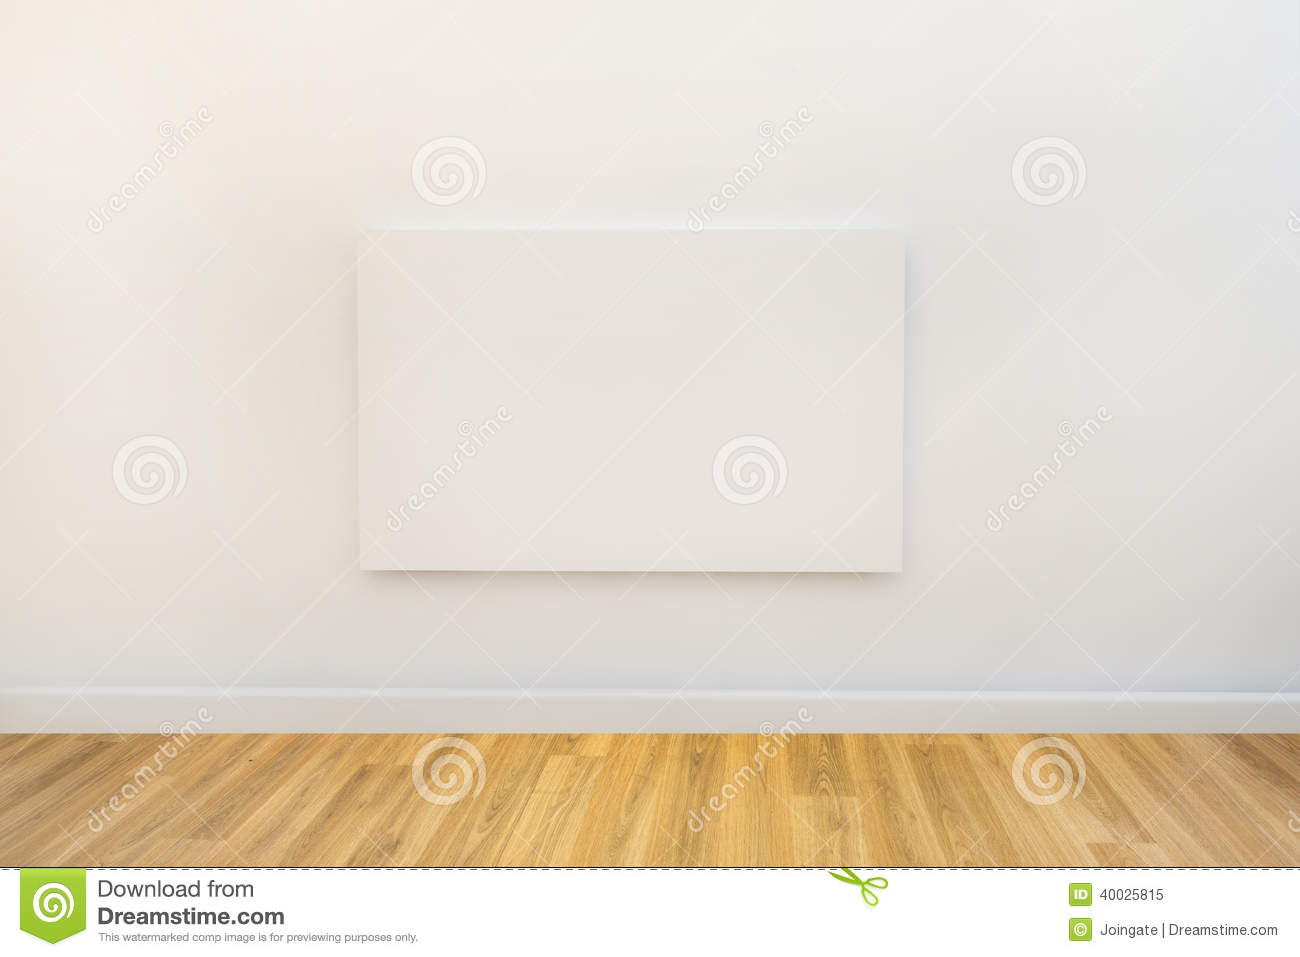 Single Art Canvas In An Empty Gallery Space Stock